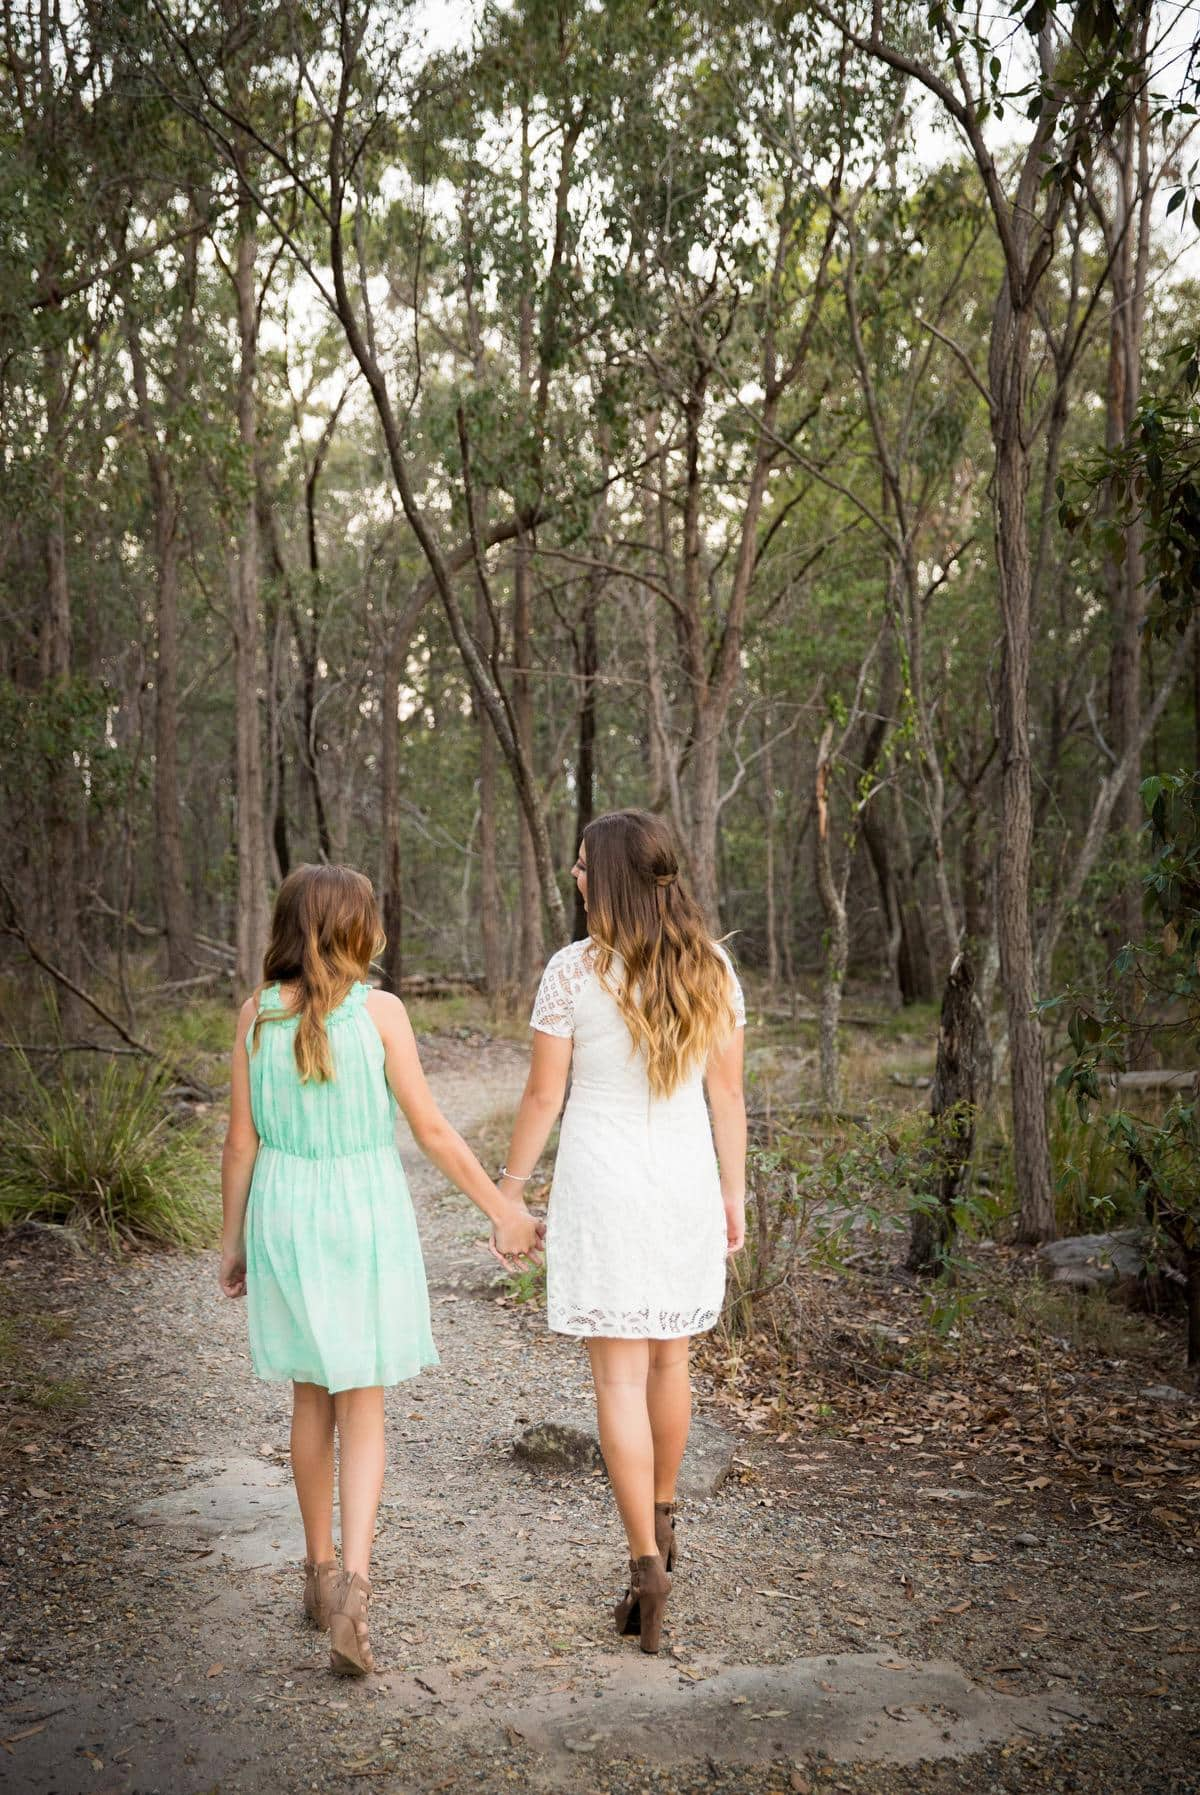 Sisters Photoshoot Field + Forst Photography www.fiendnandforest.com.au